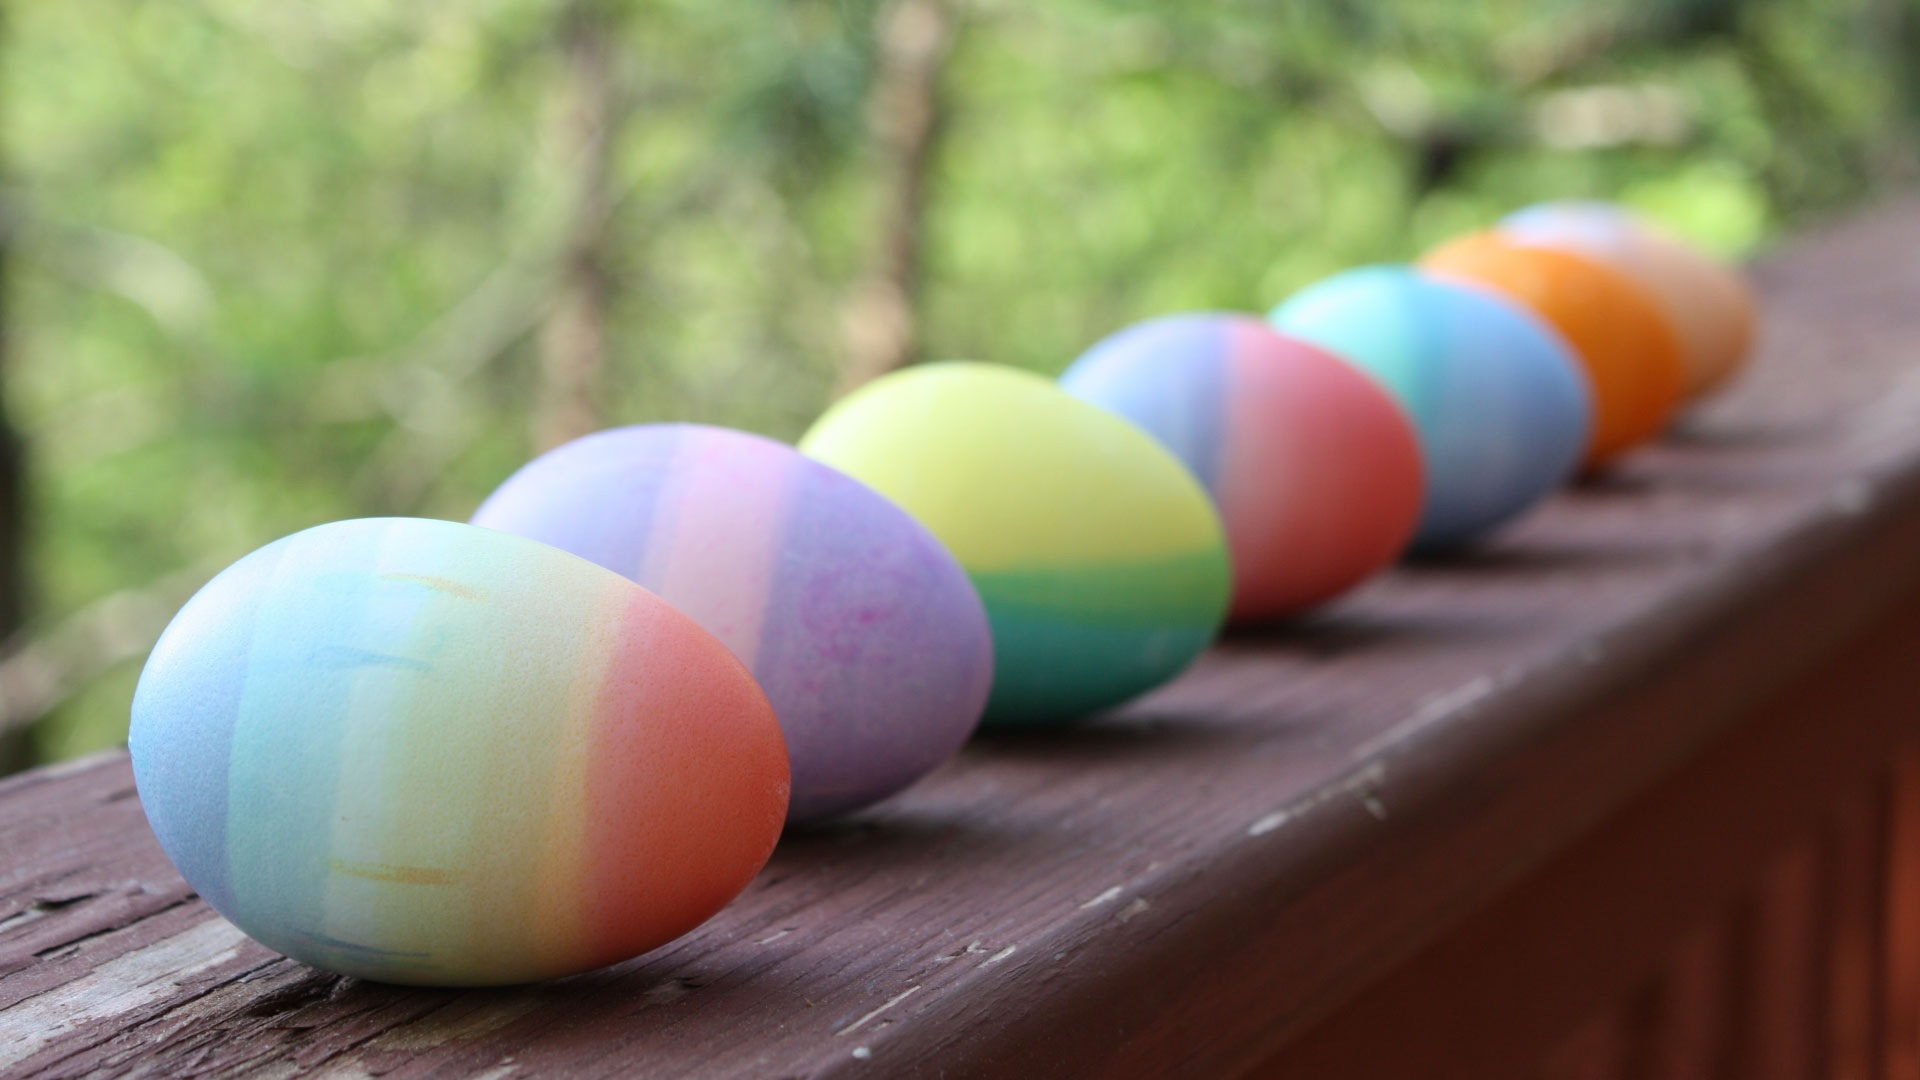 Easter Eggs Wallpapers In Jpg Format For Free Download